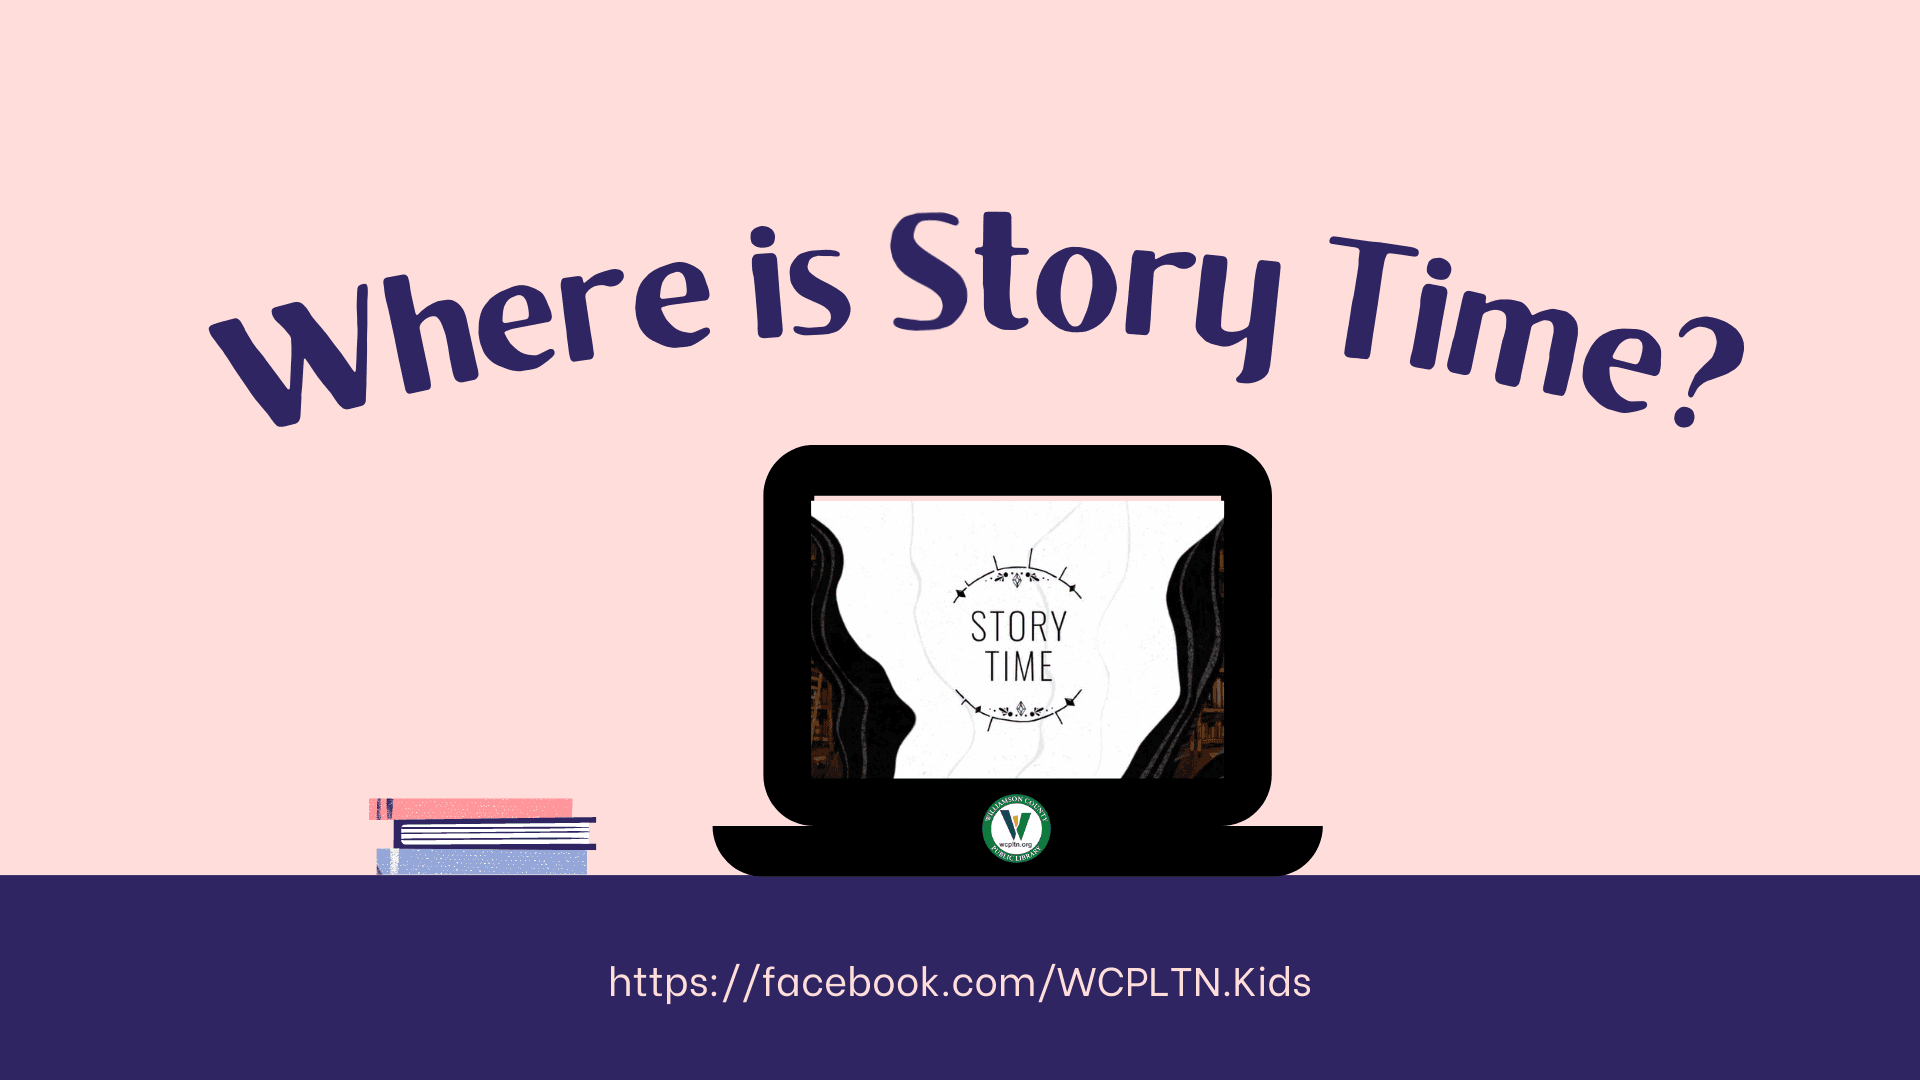 Where is Story Time? with image of computer with library logo and books plus url